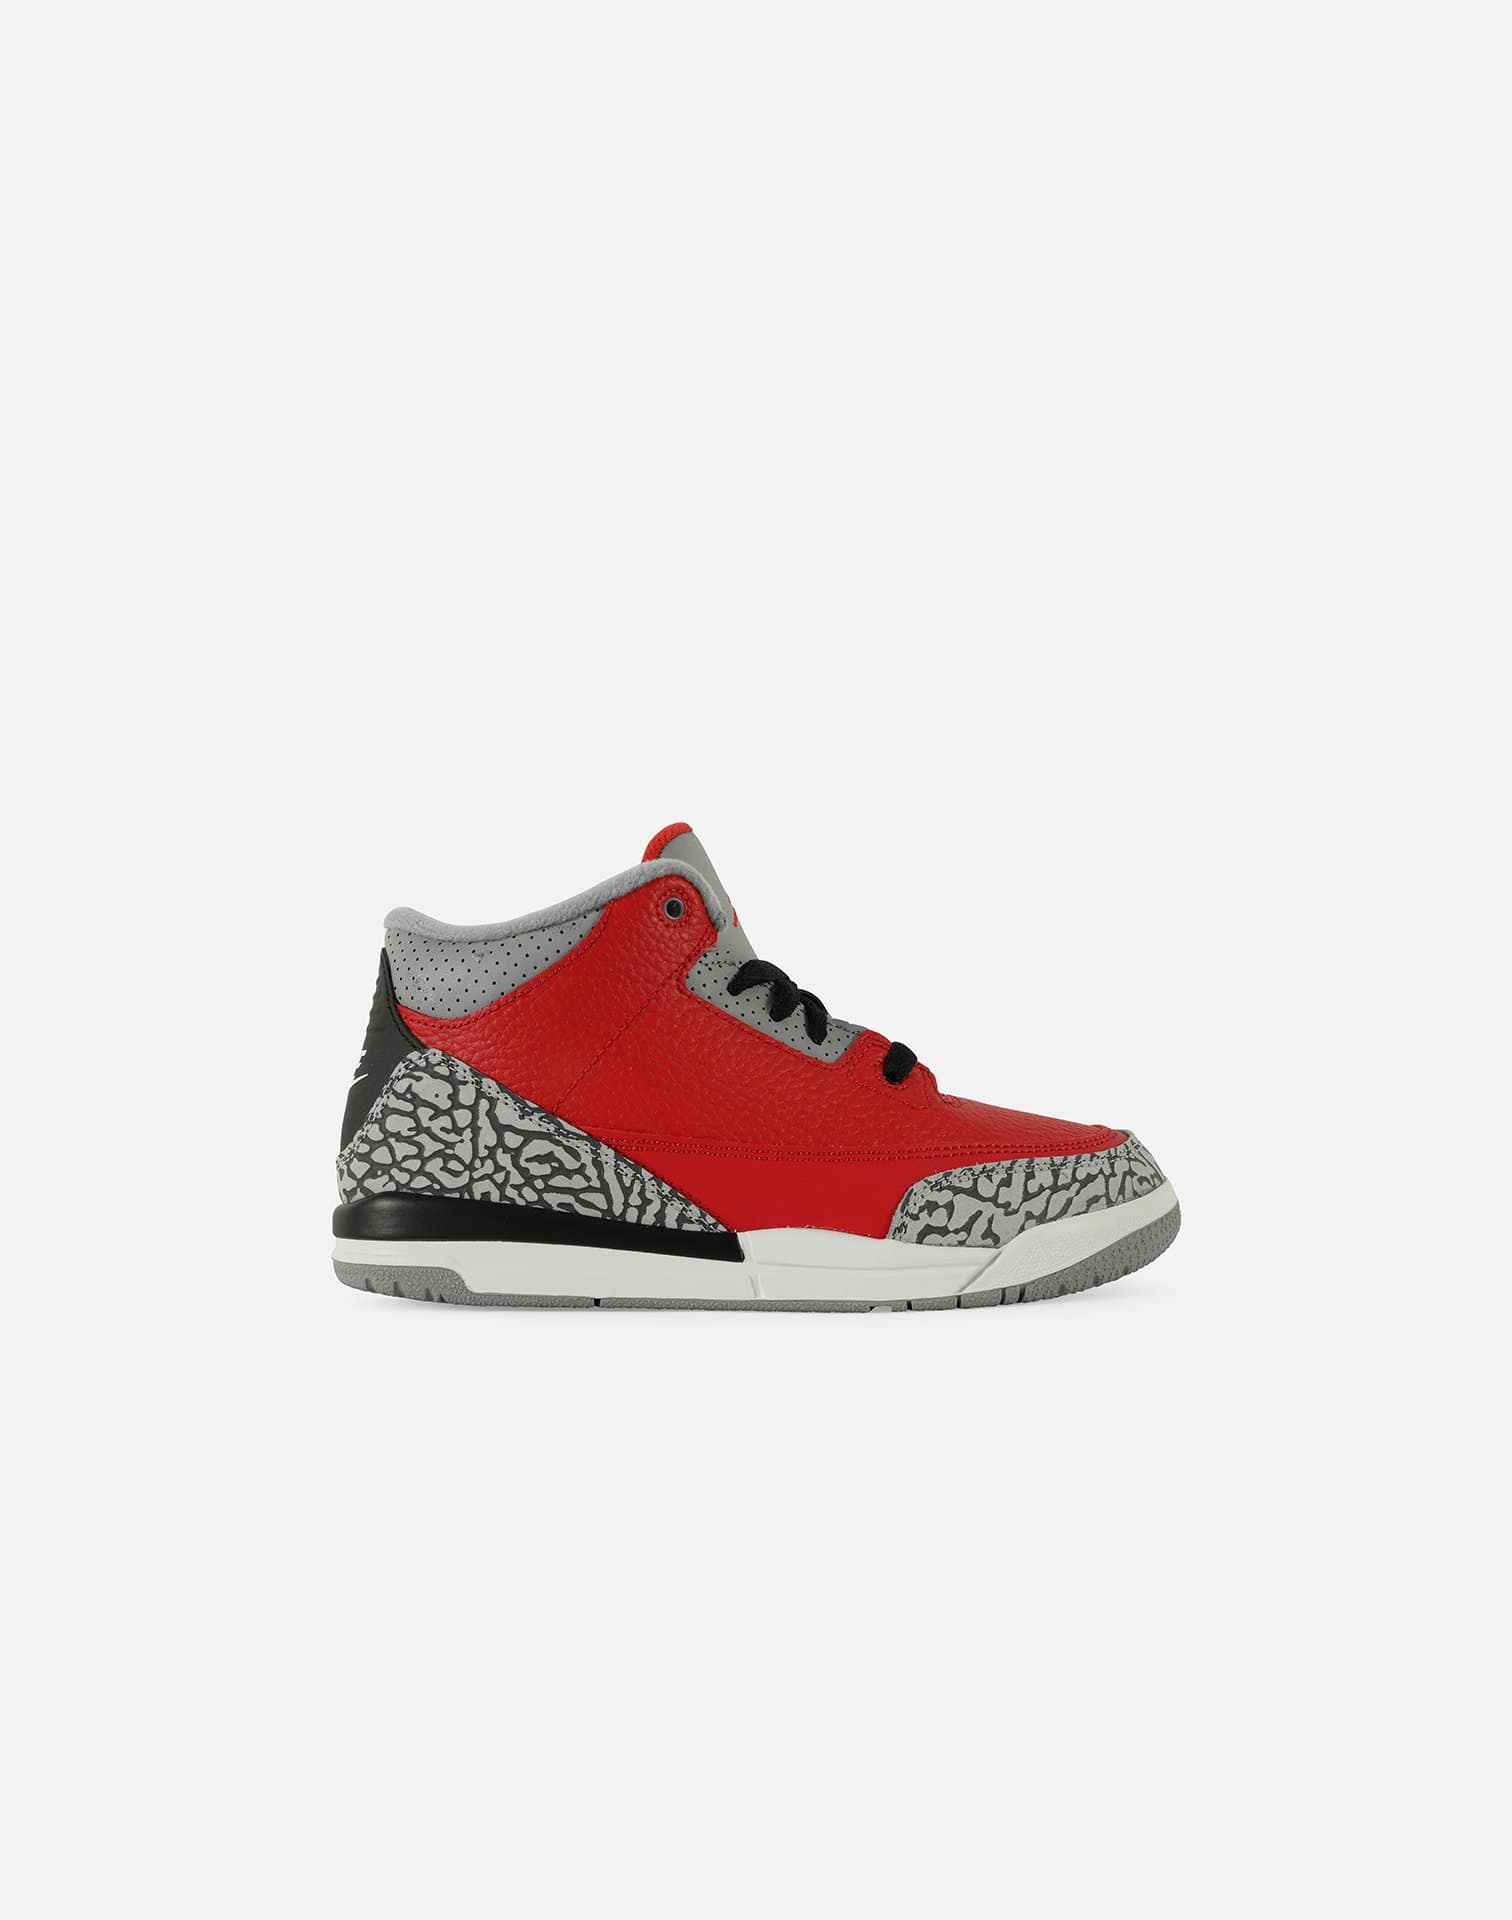 Jordan AIR JORDAN RETRO 3 SE 'UNITE' PRE-SCHOOL